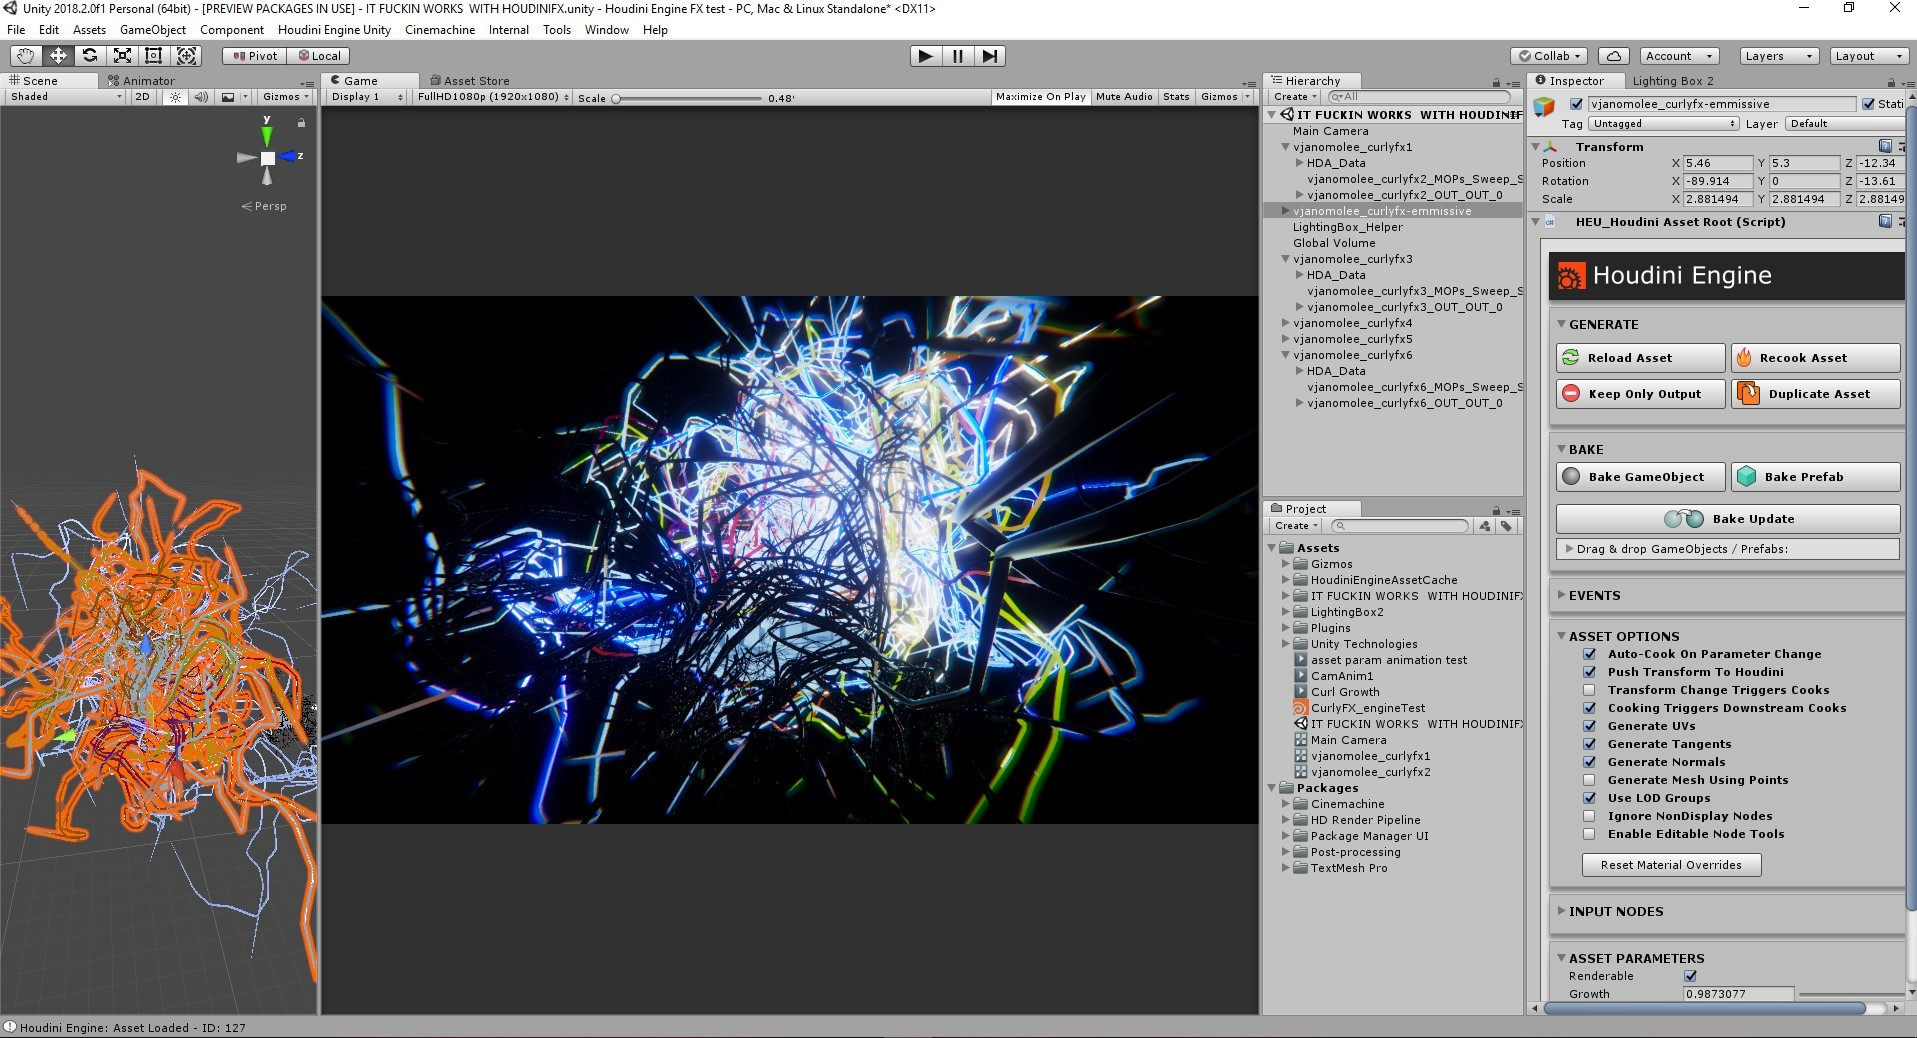 ArtStation - Curl Noise MOP experiments in Houdini Engine in